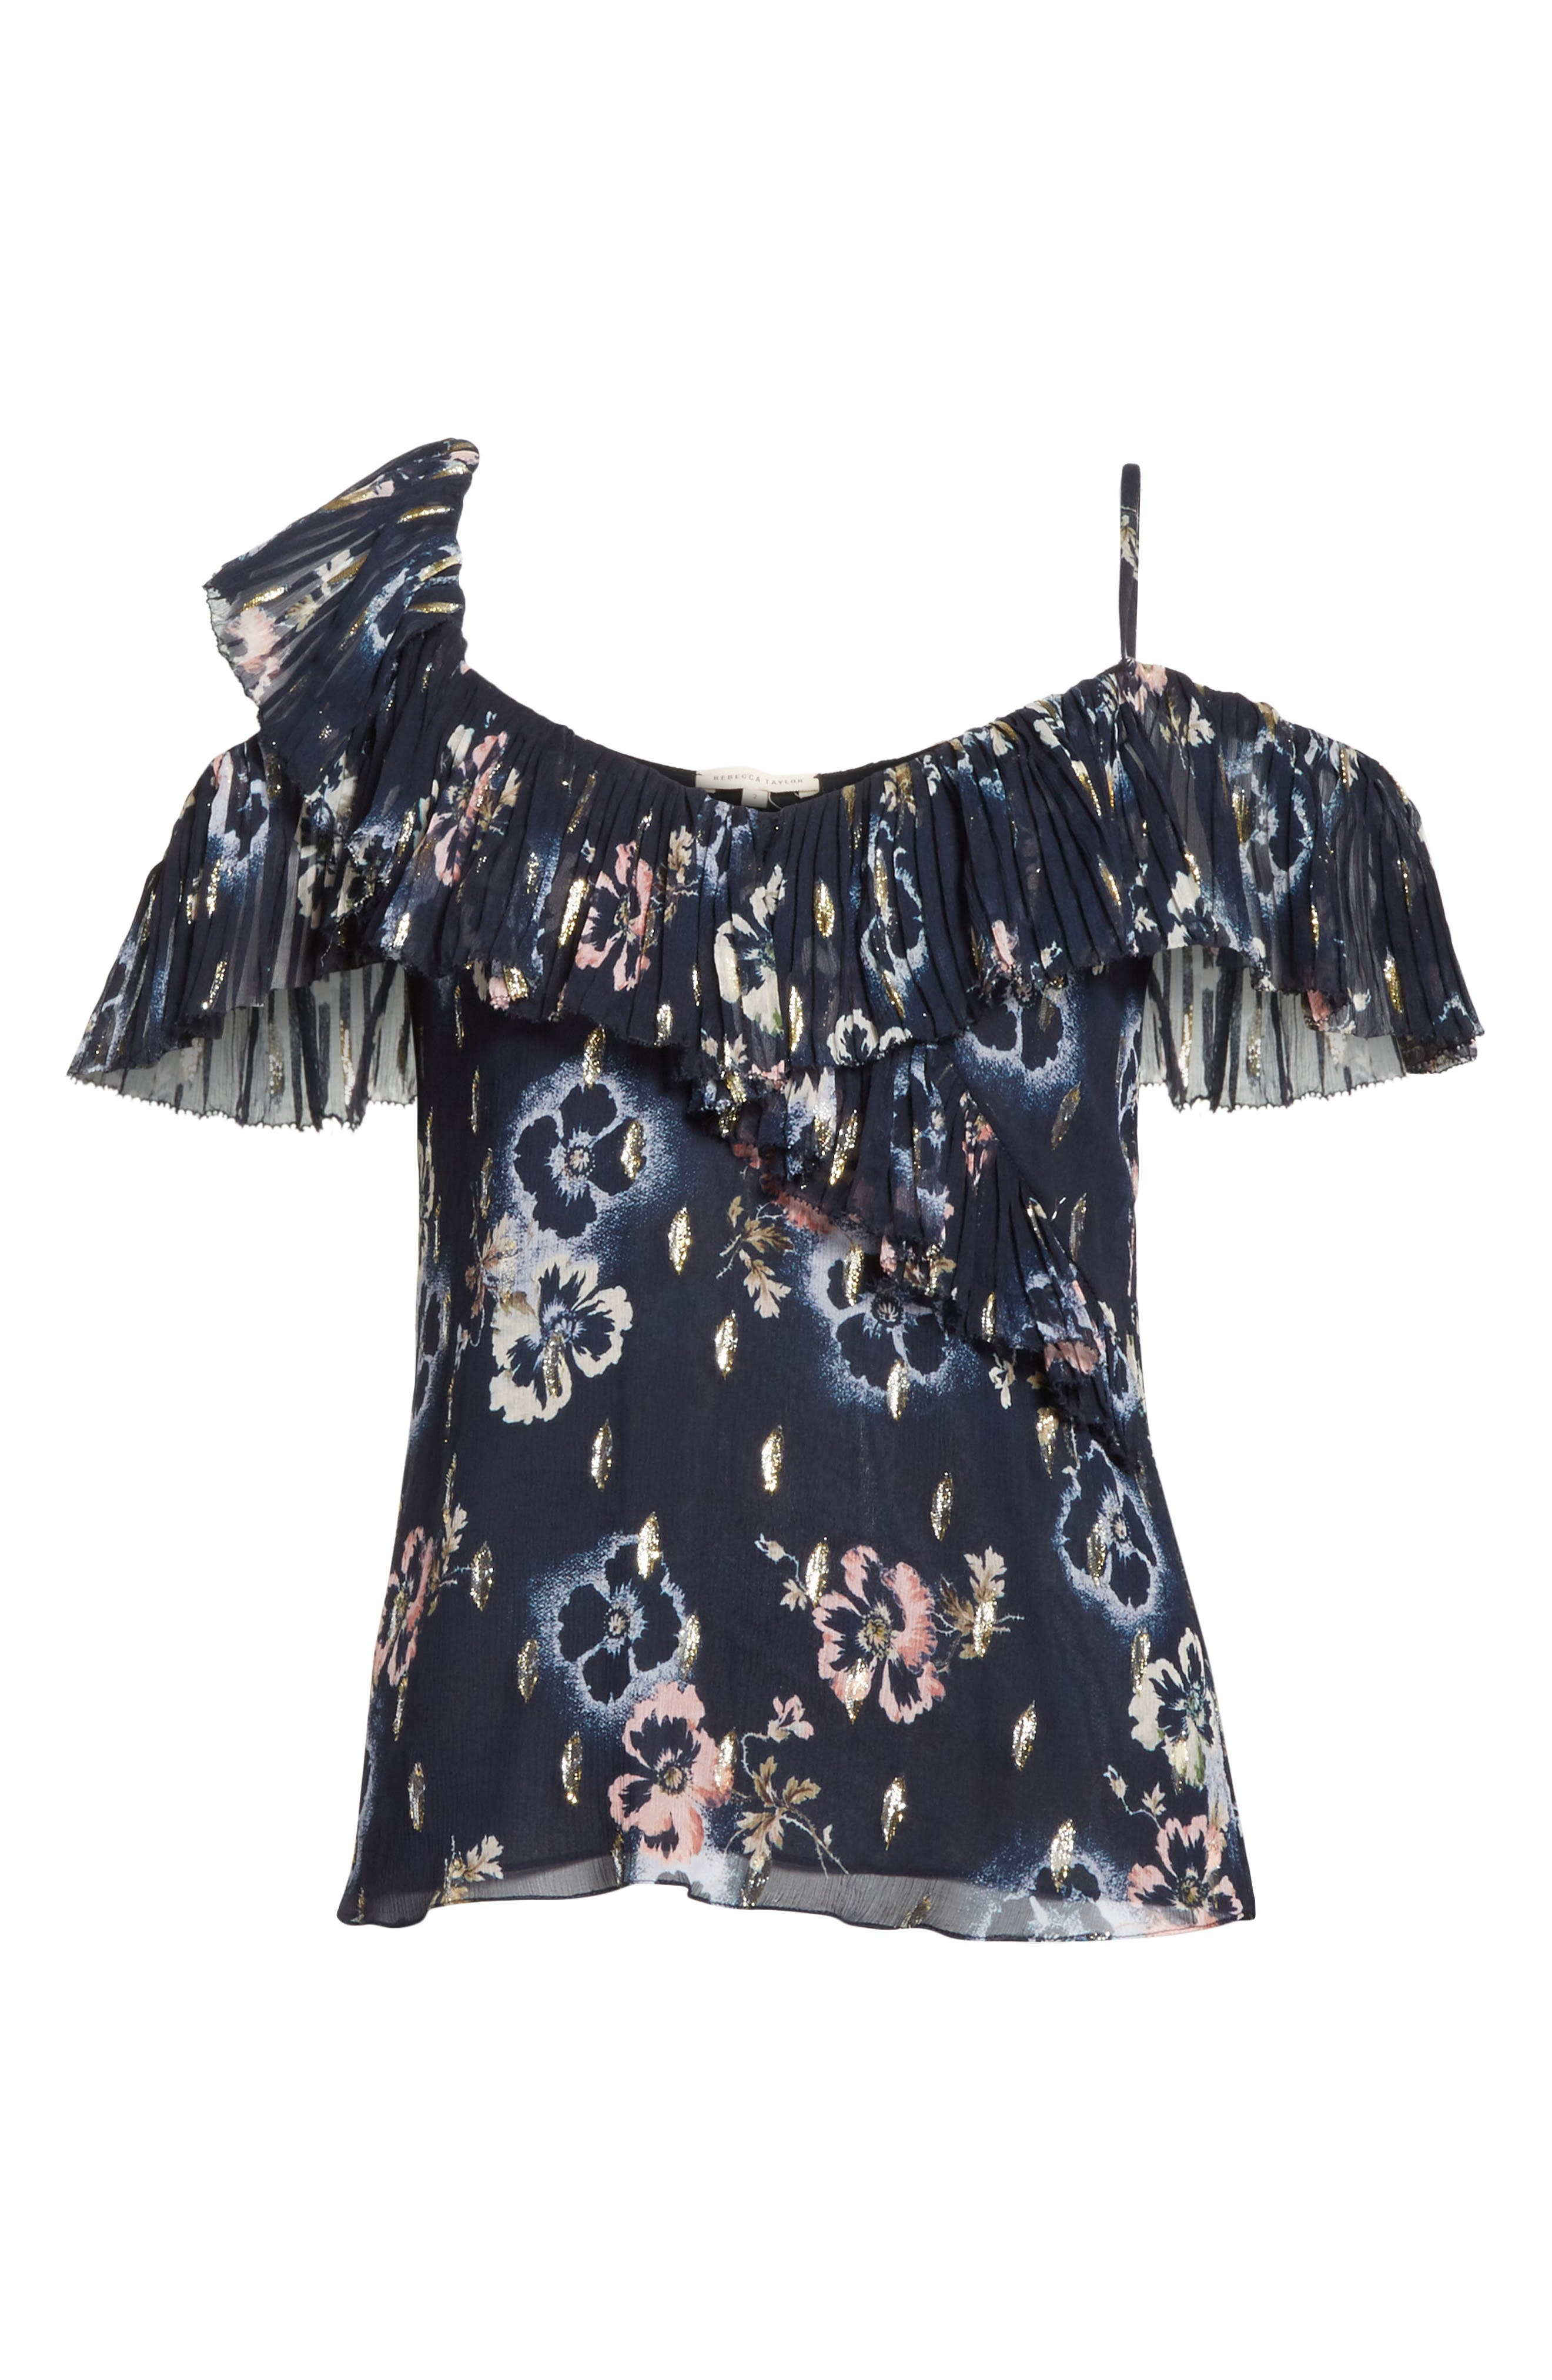 Faded Floral Top,                             Alternate thumbnail 6, color,                             Navy